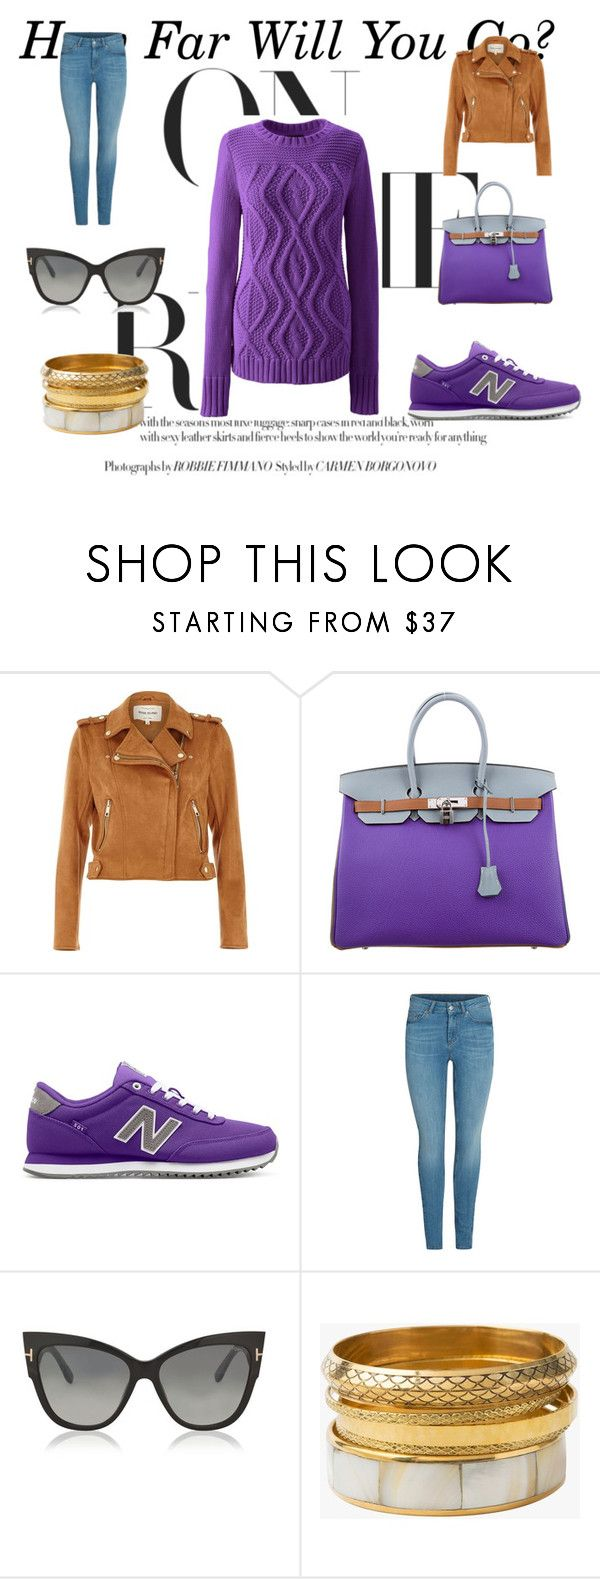 """""""Let's go to the University!"""" by ciukinaa on Polyvore featuring moda, River Island, Hermès, New Balance, Tom Ford e Lands' End"""